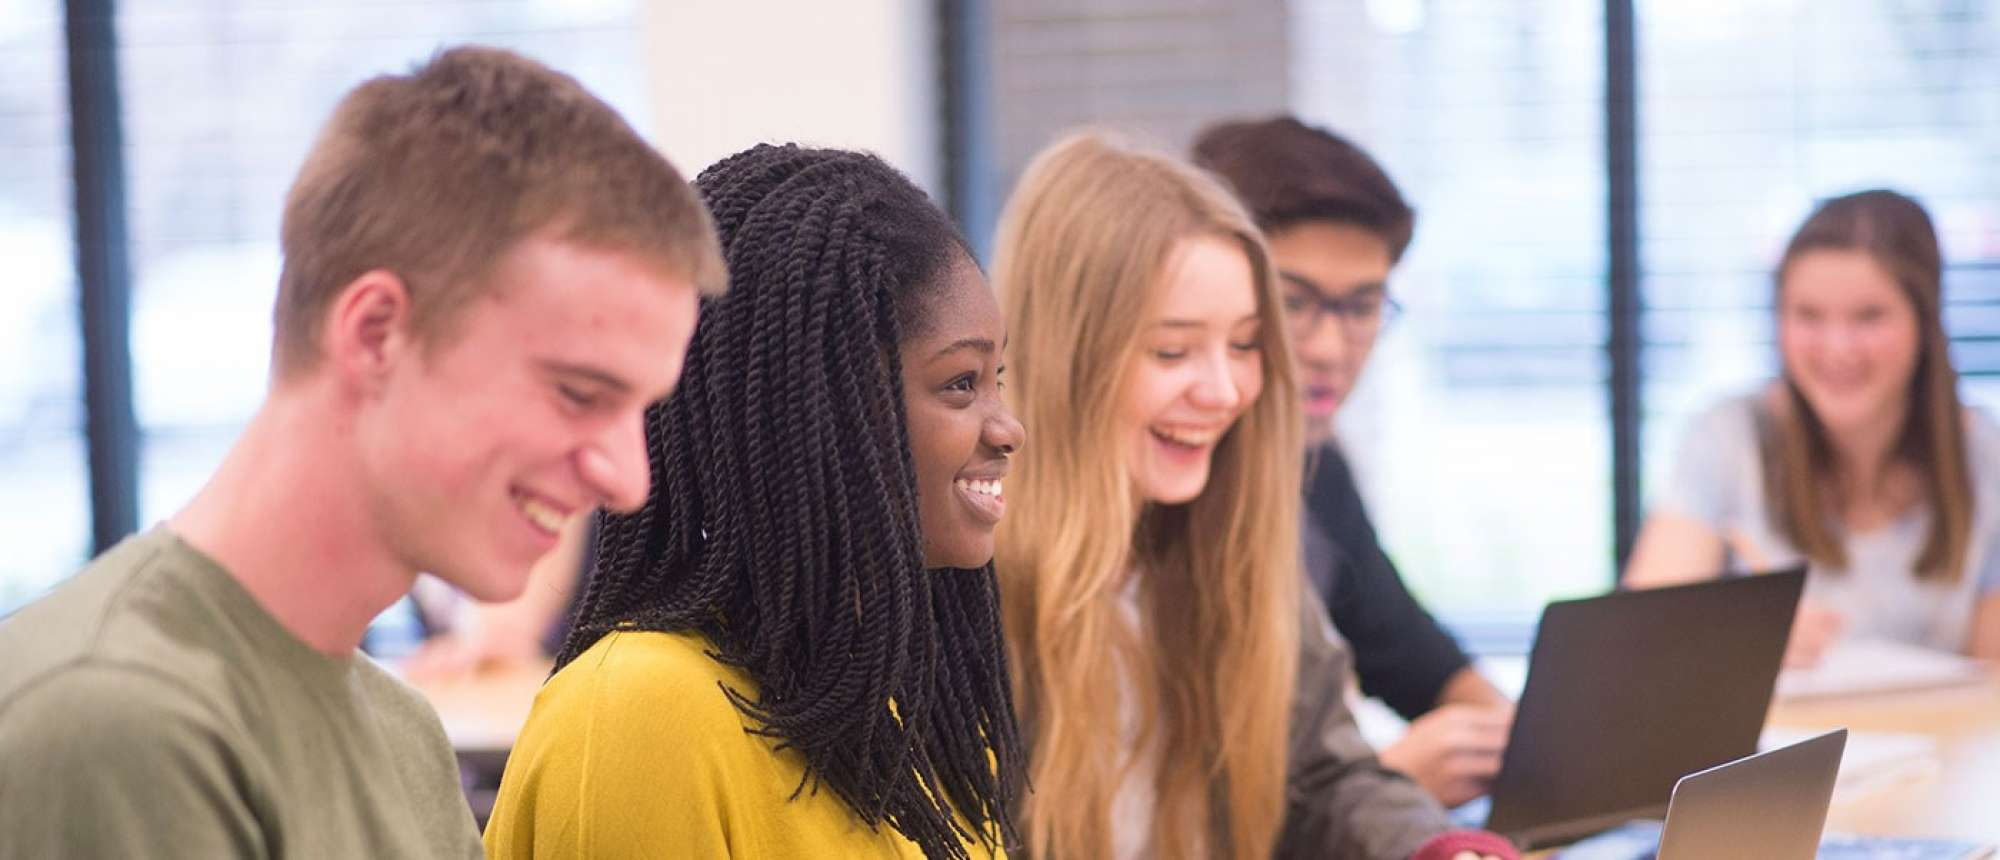 Diverse students in a classroom